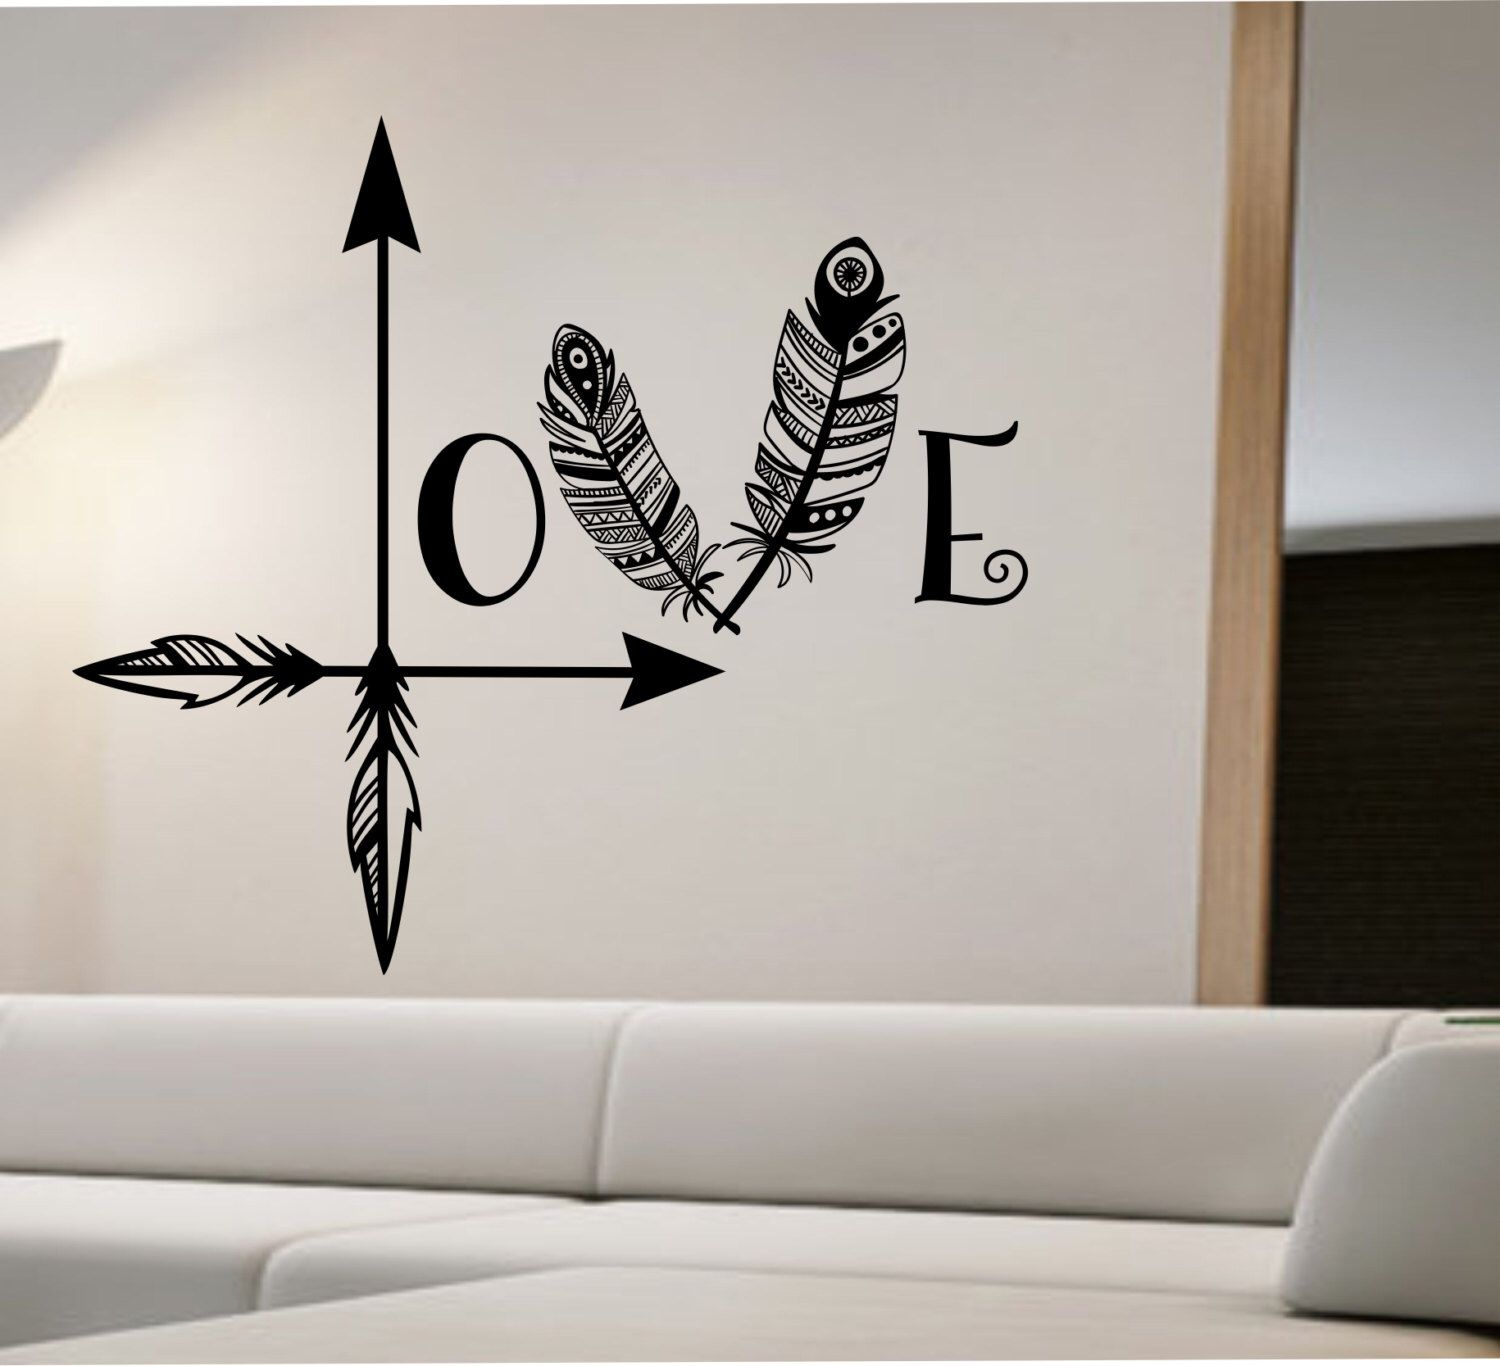 Wall Art Stickers Dunelm : Arrow feather love wall decal namaste vinyl sticker art